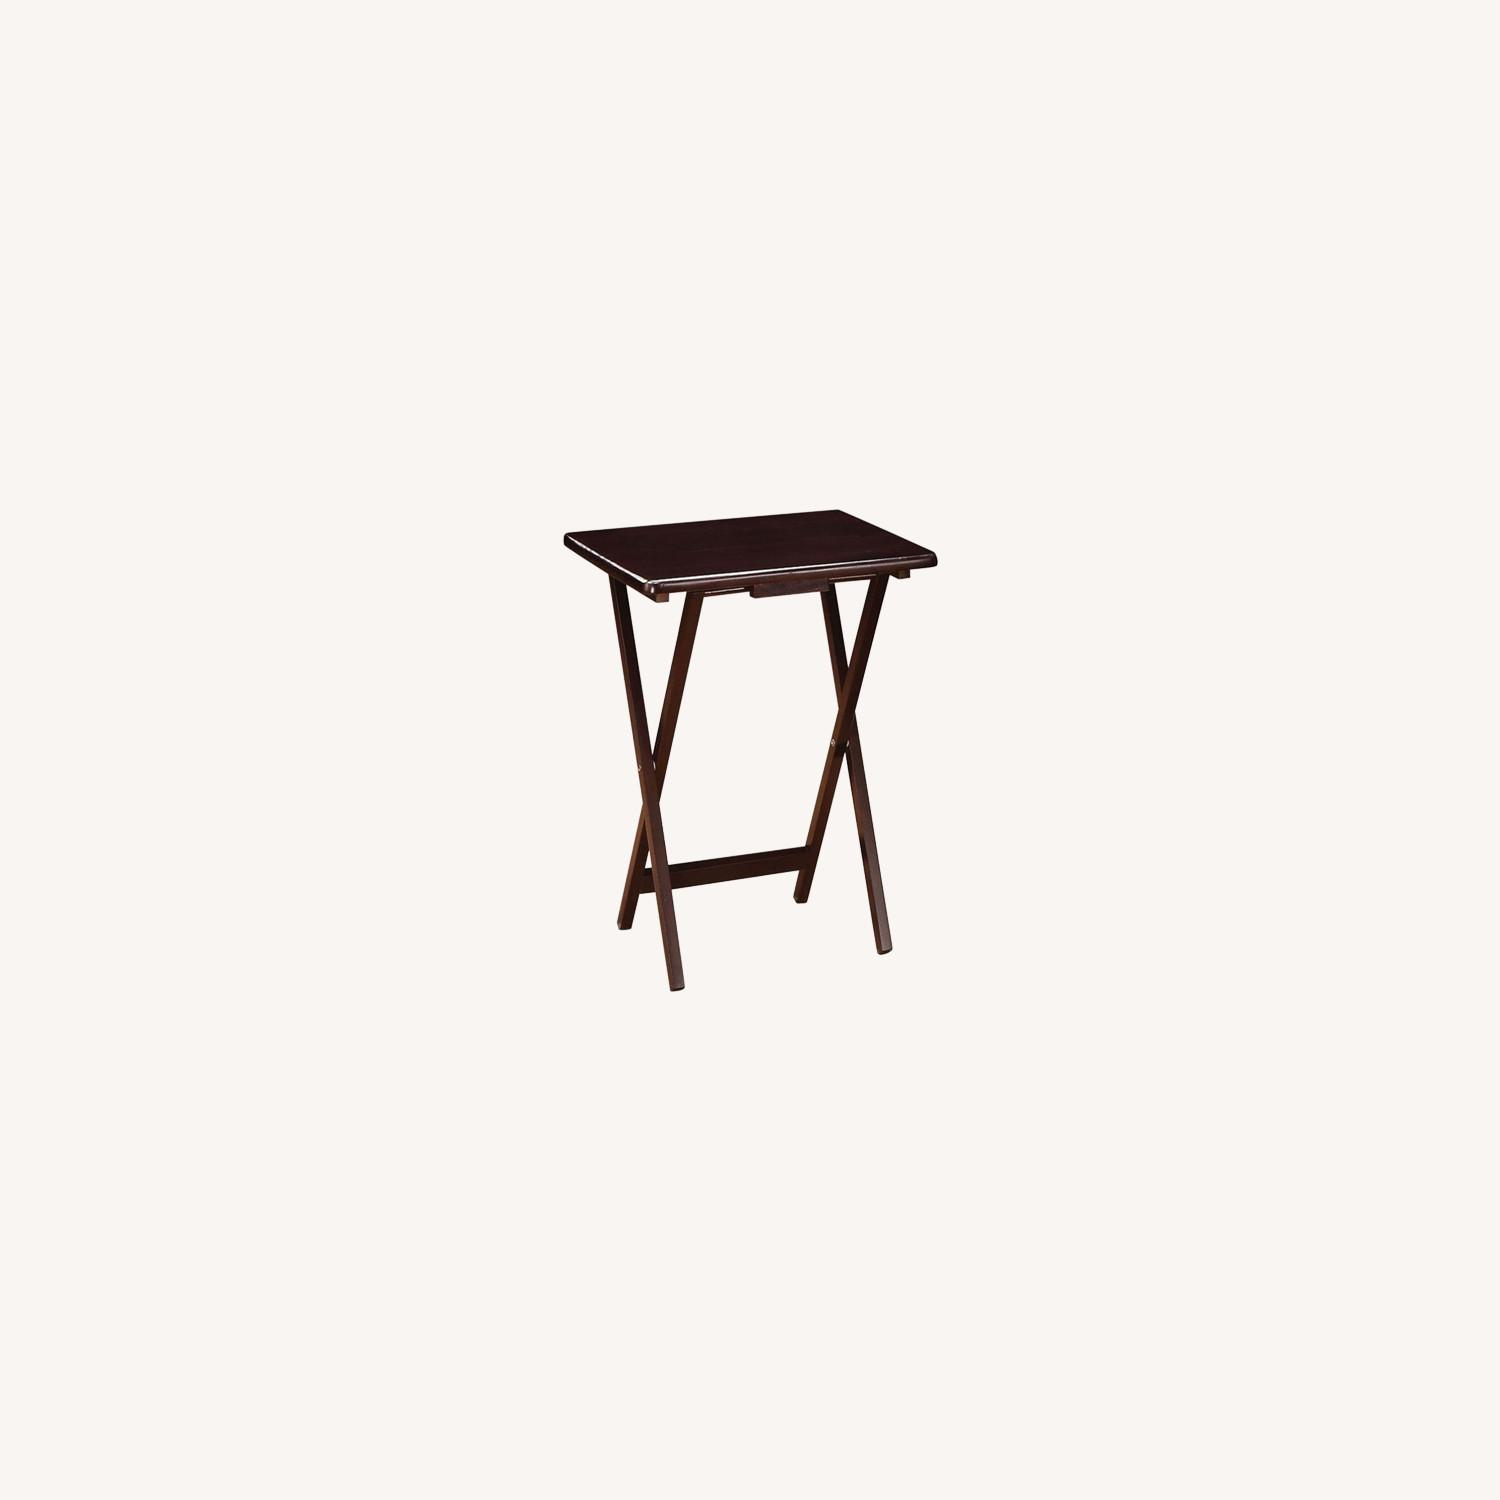 5-Piece Tray Table In Cappuccino Finish - image-3